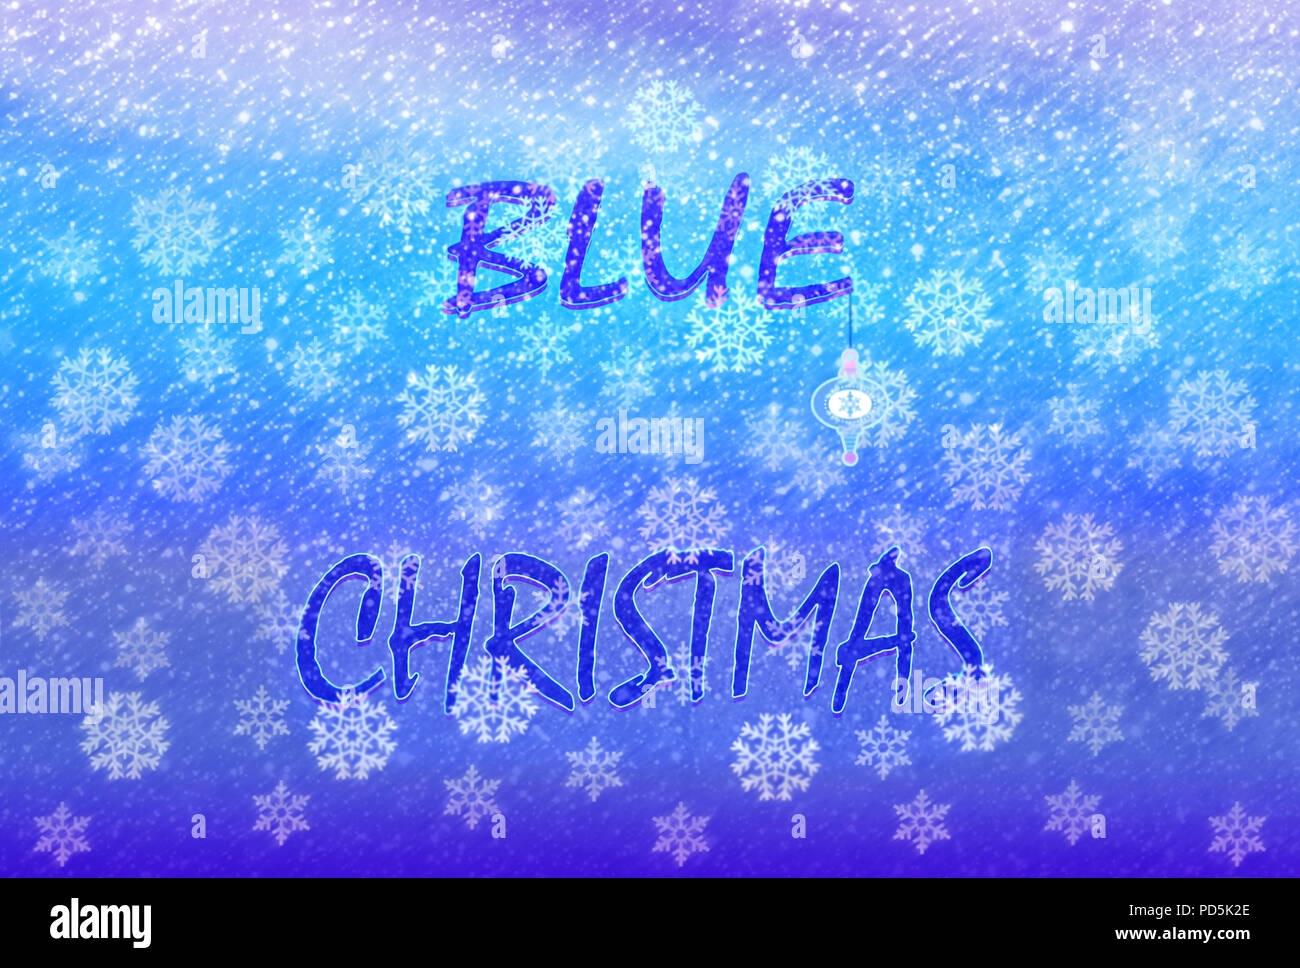 Christmas Without You.I Ll Have A Blue Christmas Without You Stock Photo